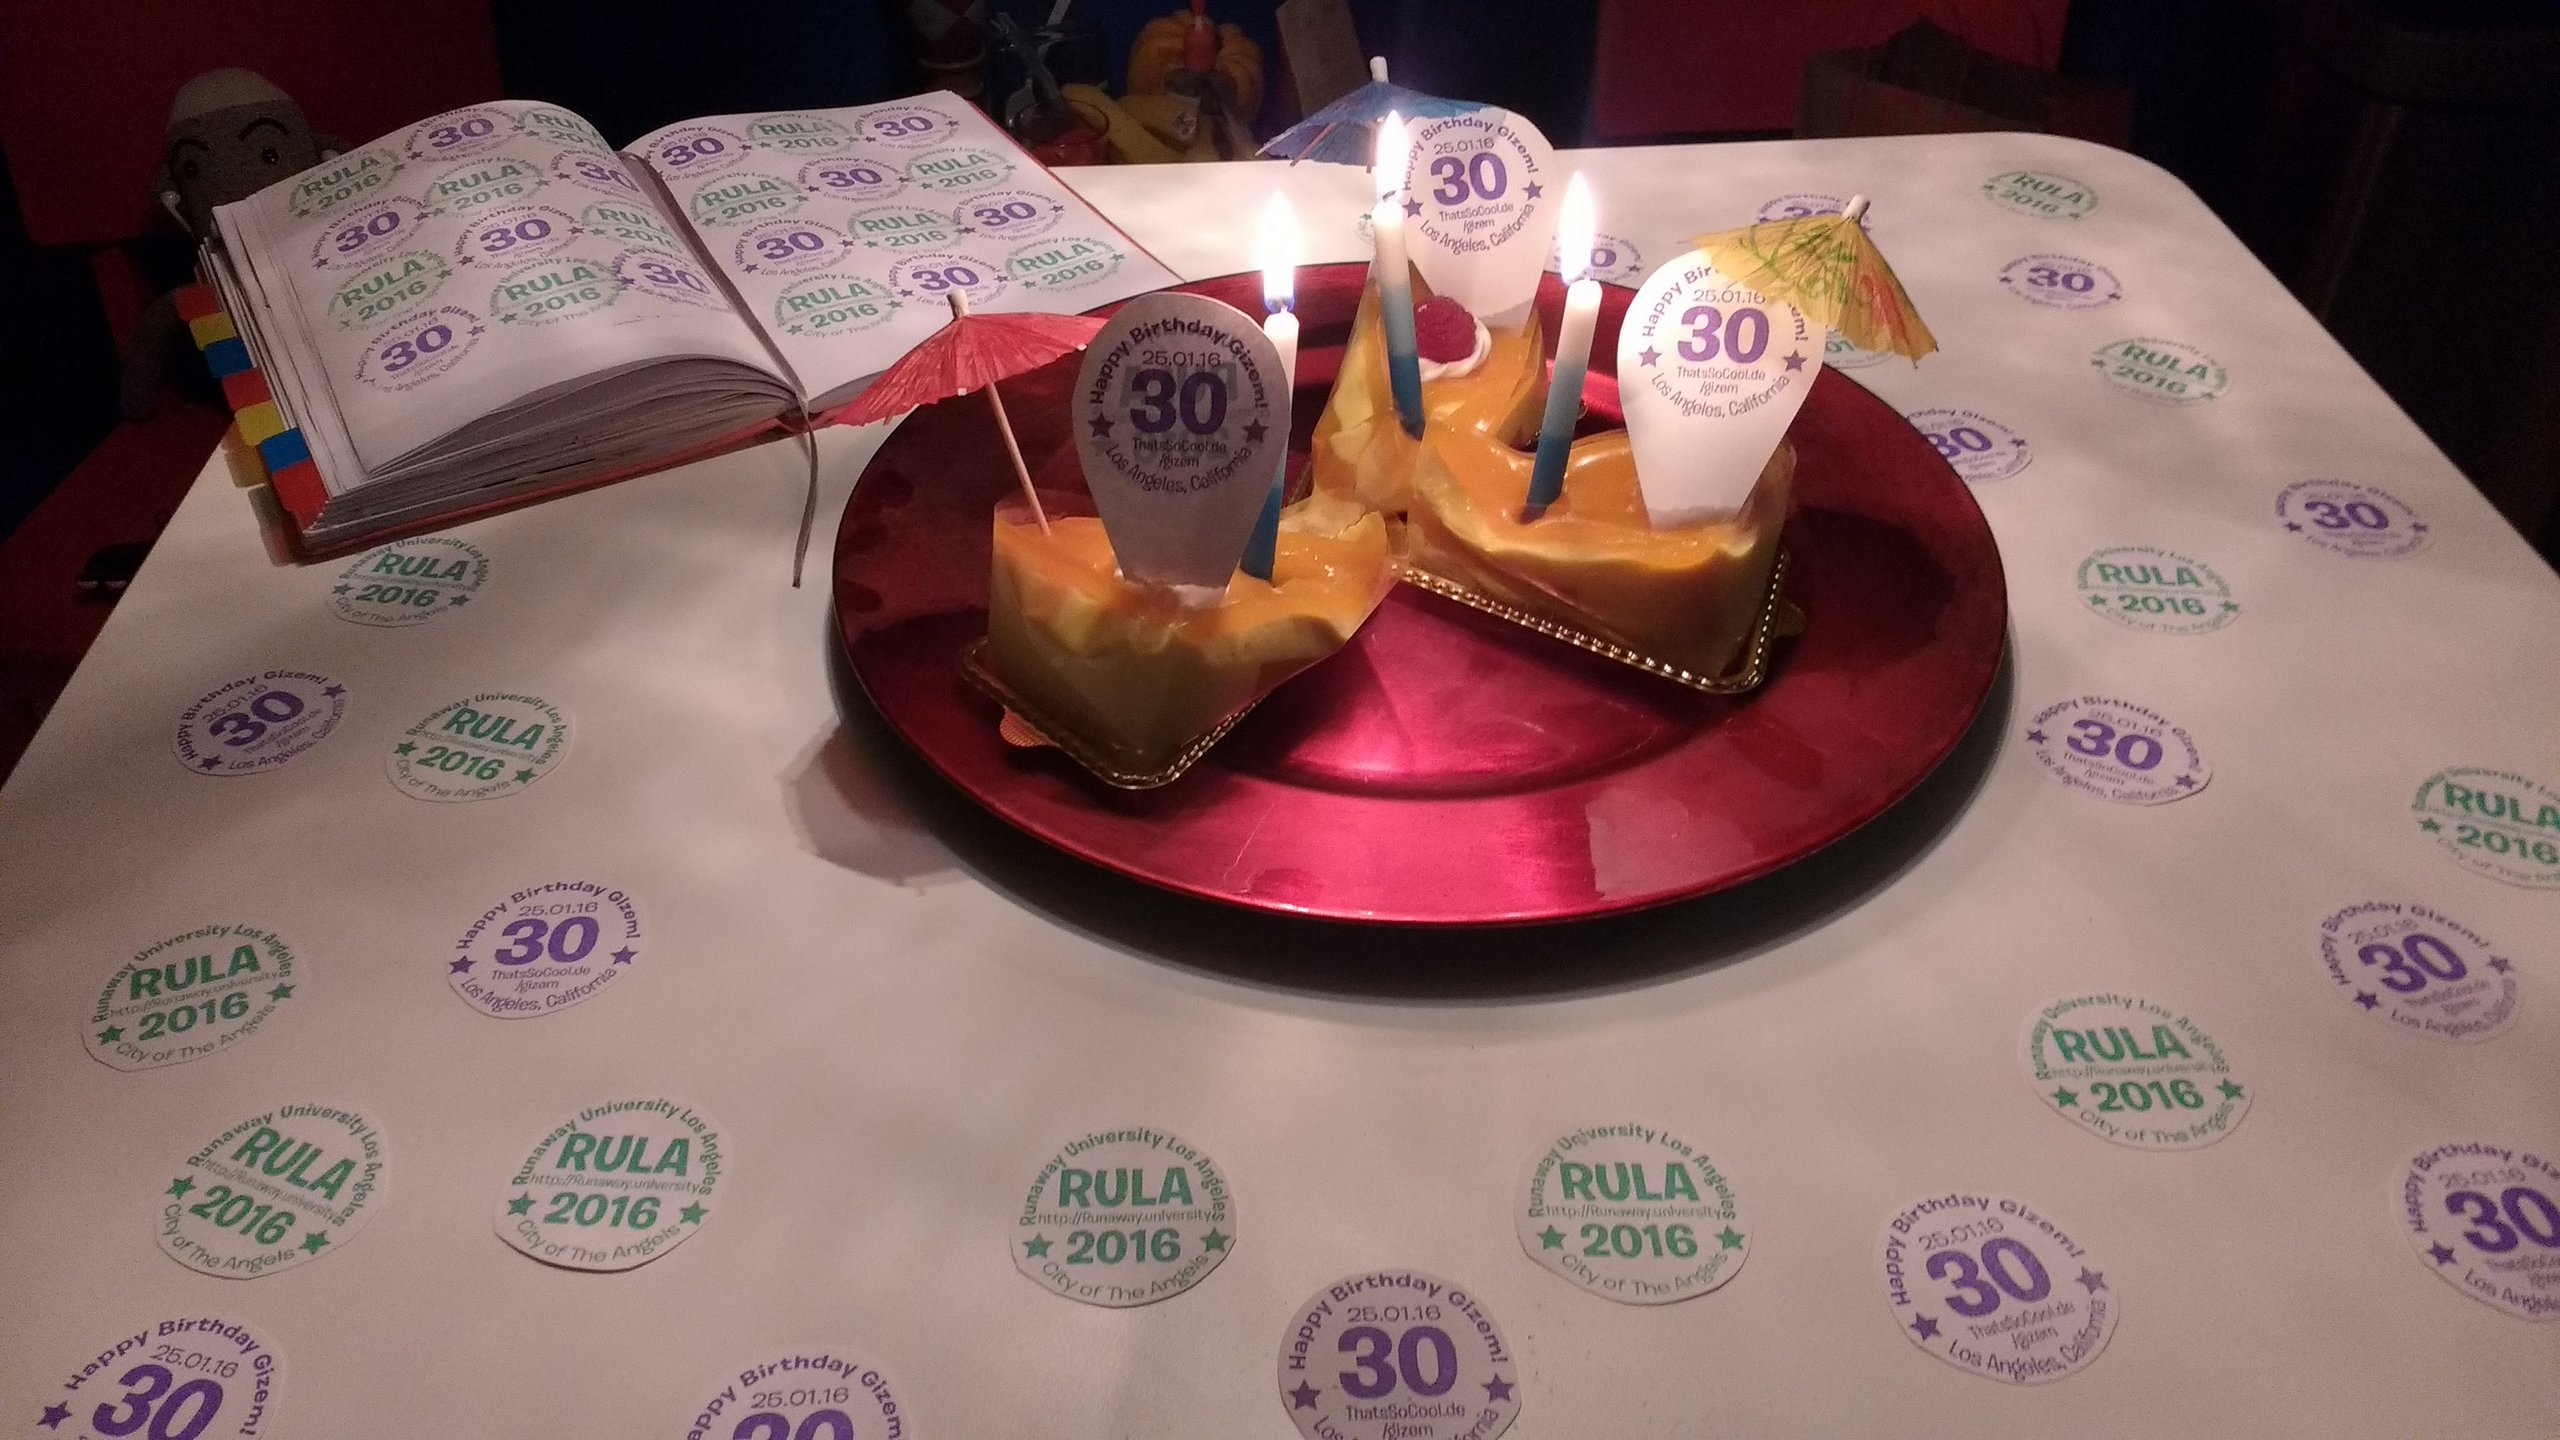 """3 slices of dessert on a table. The table is decorated with logos for """"RULA"""" and for """"Gizem's 30th Birthday"""""""